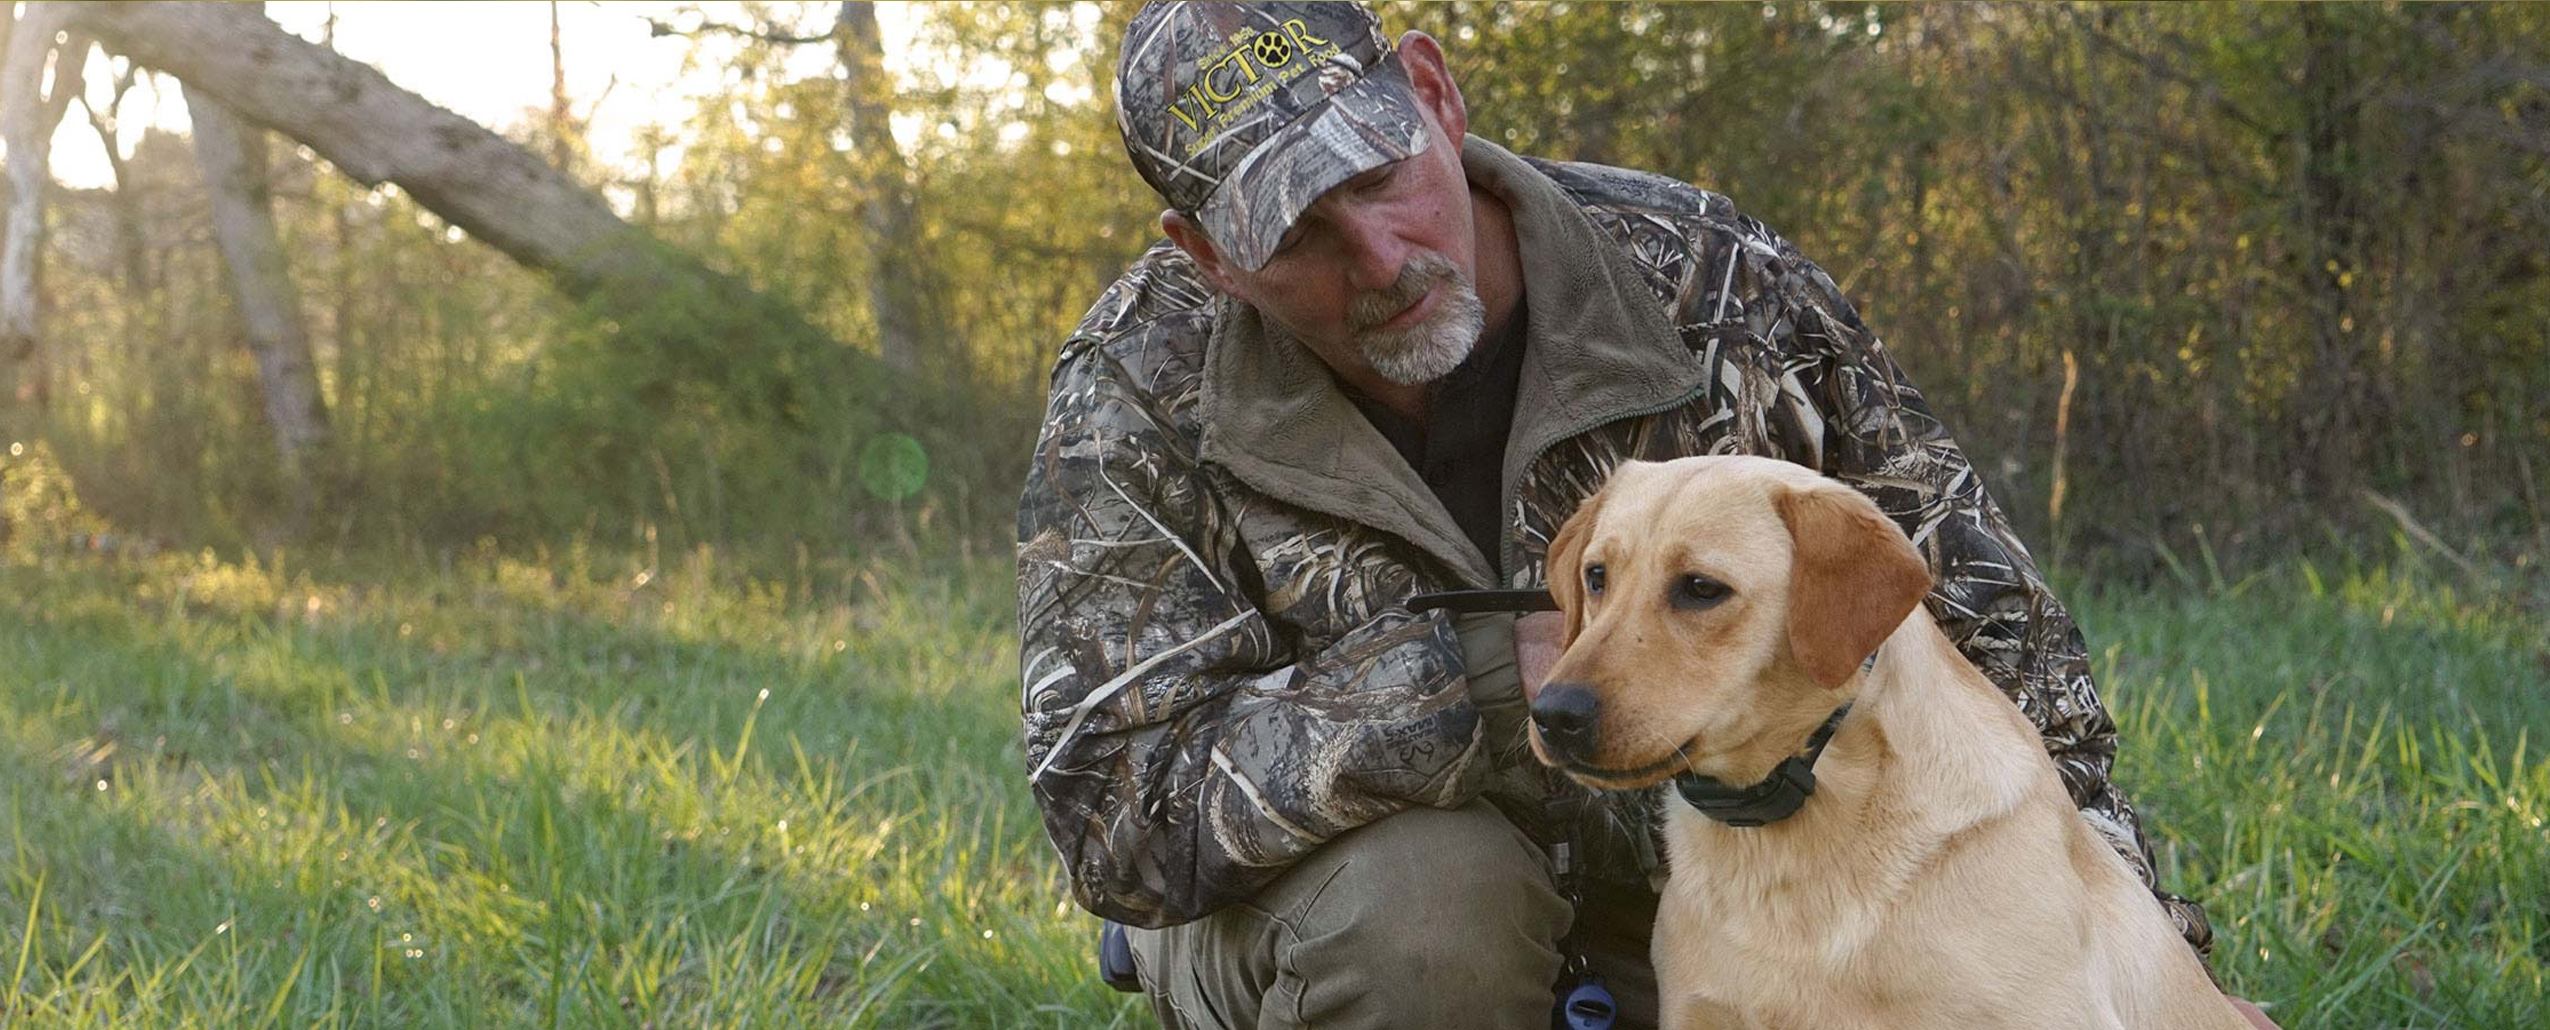 Dog trainer Shawn Sims with yellow labrador retriever dog in field